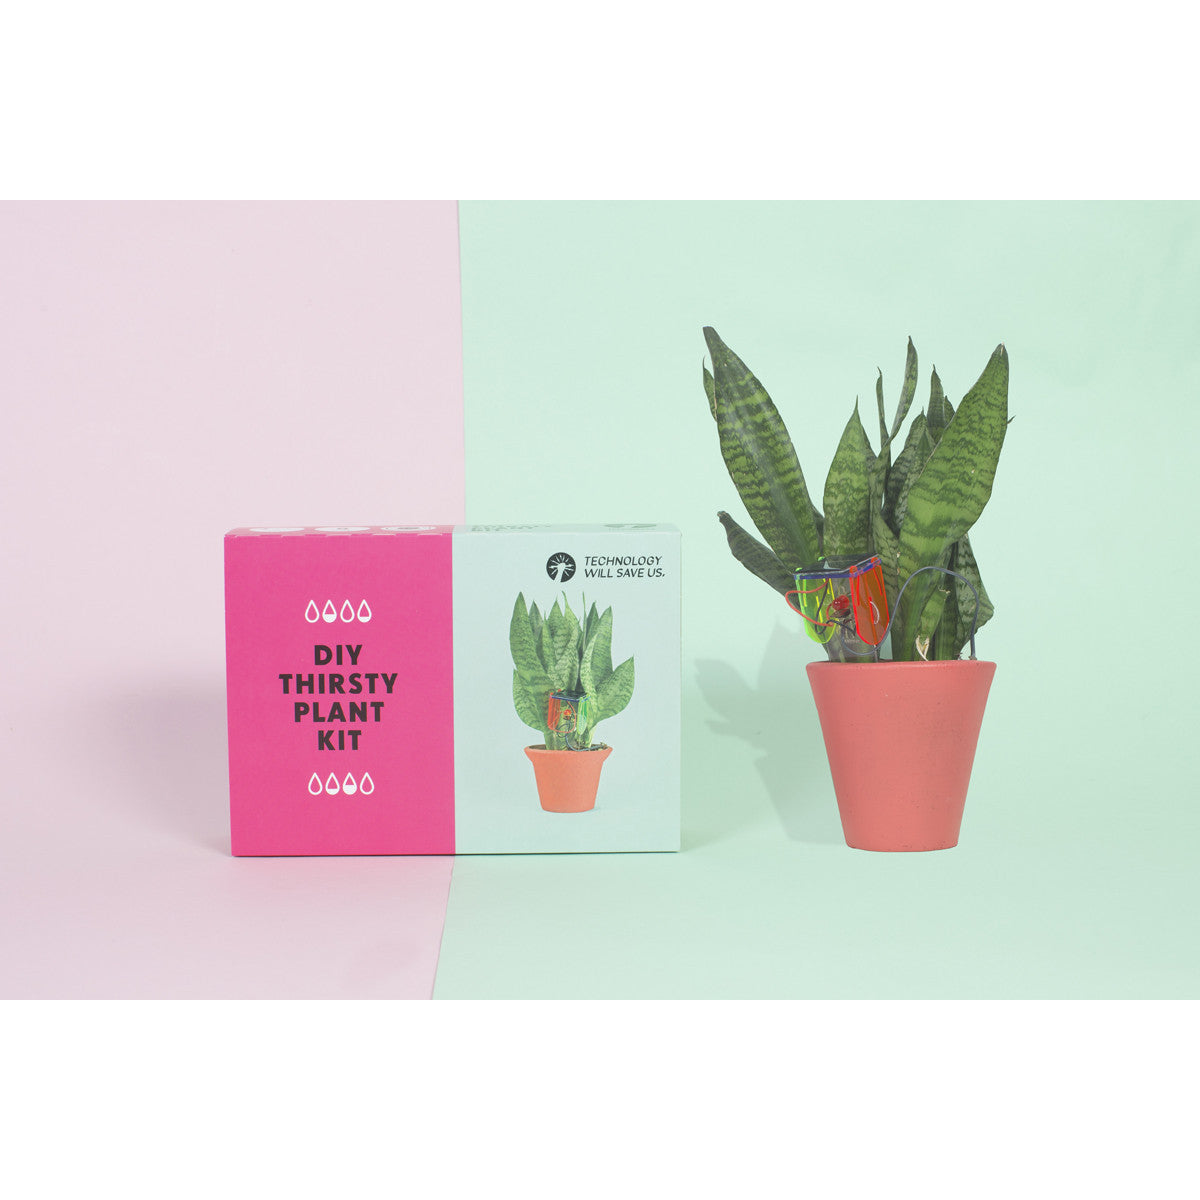 Tech Will Save Us D.I.Y. Thirsty Plant Kit